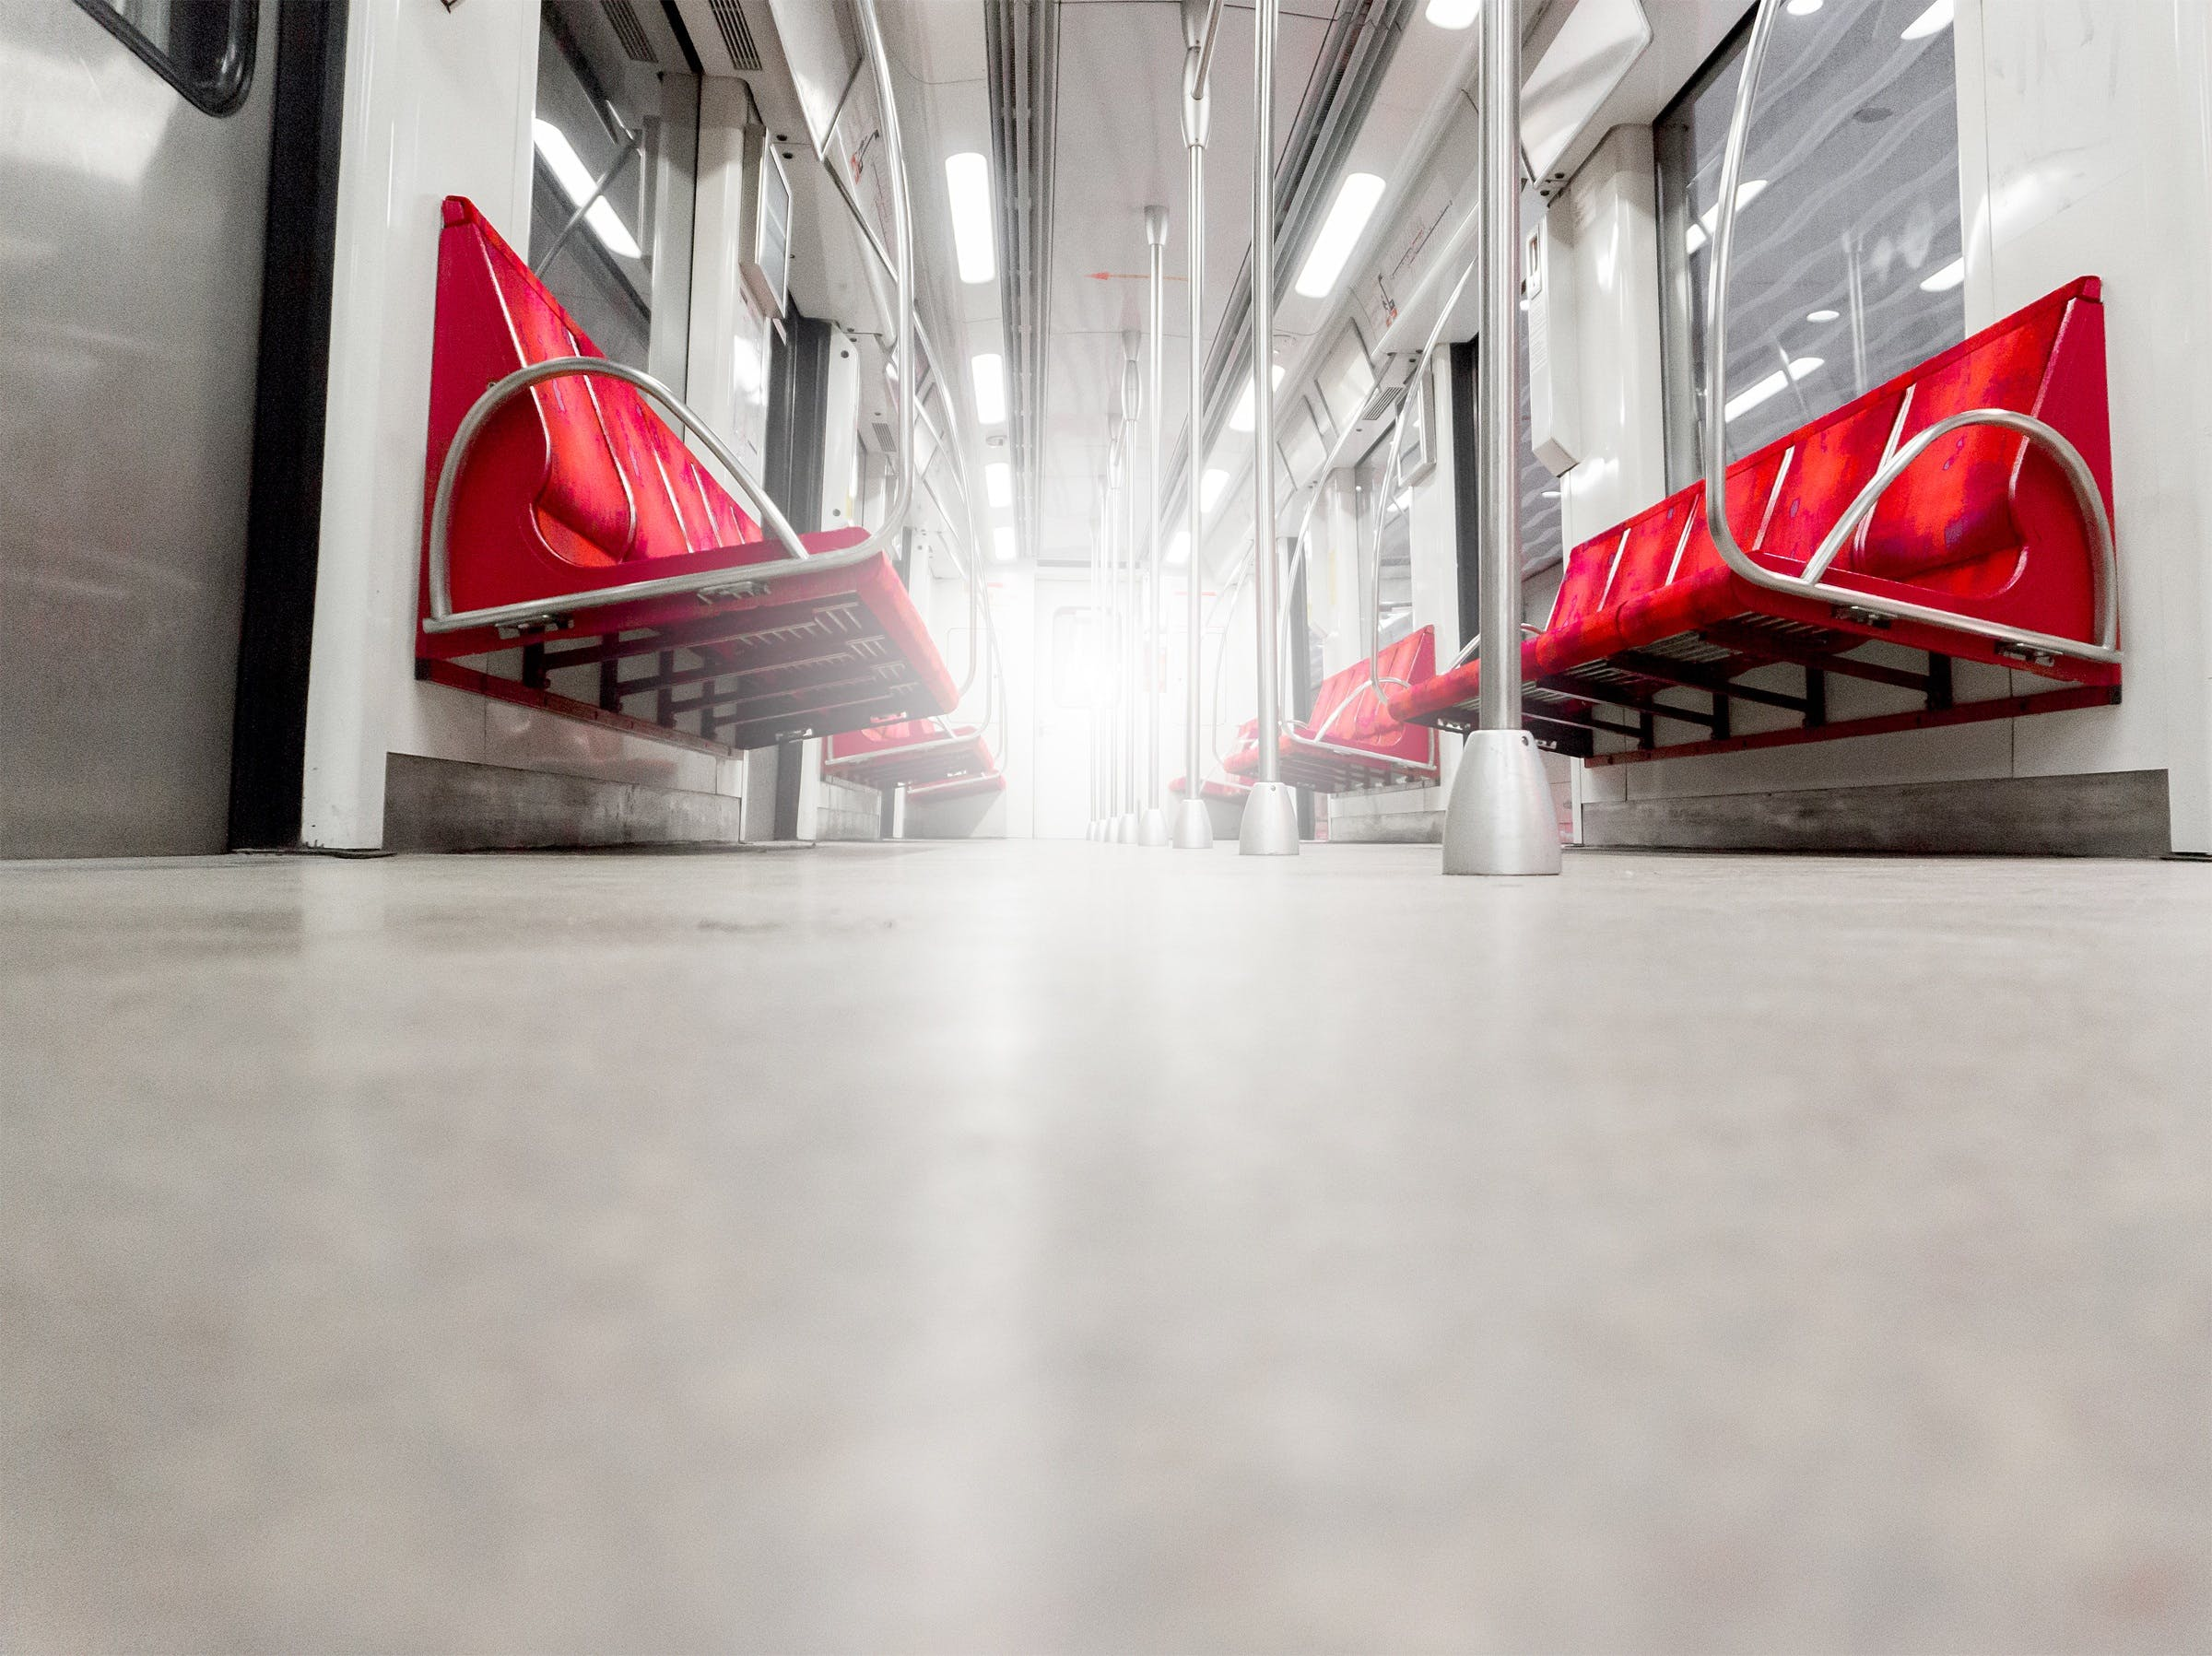 Low Angle Photography of Empty Train Interior